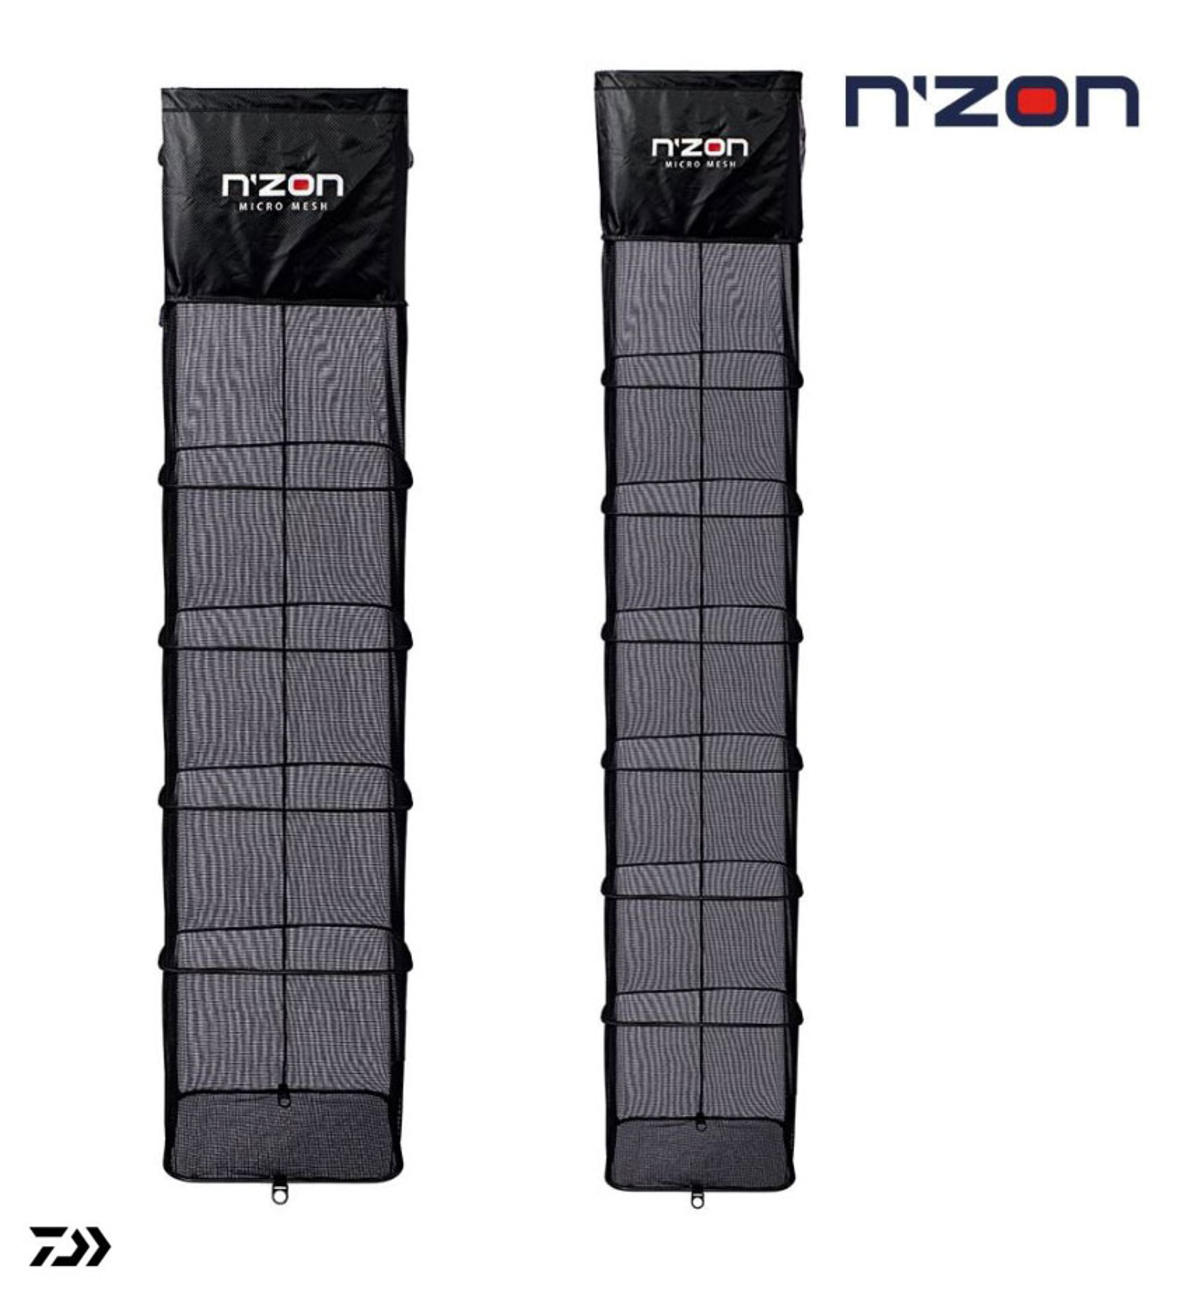 New Daiwa N'ZON Micromesh Keepnets - 2.5m / 3m - Coarse Fishing Nets